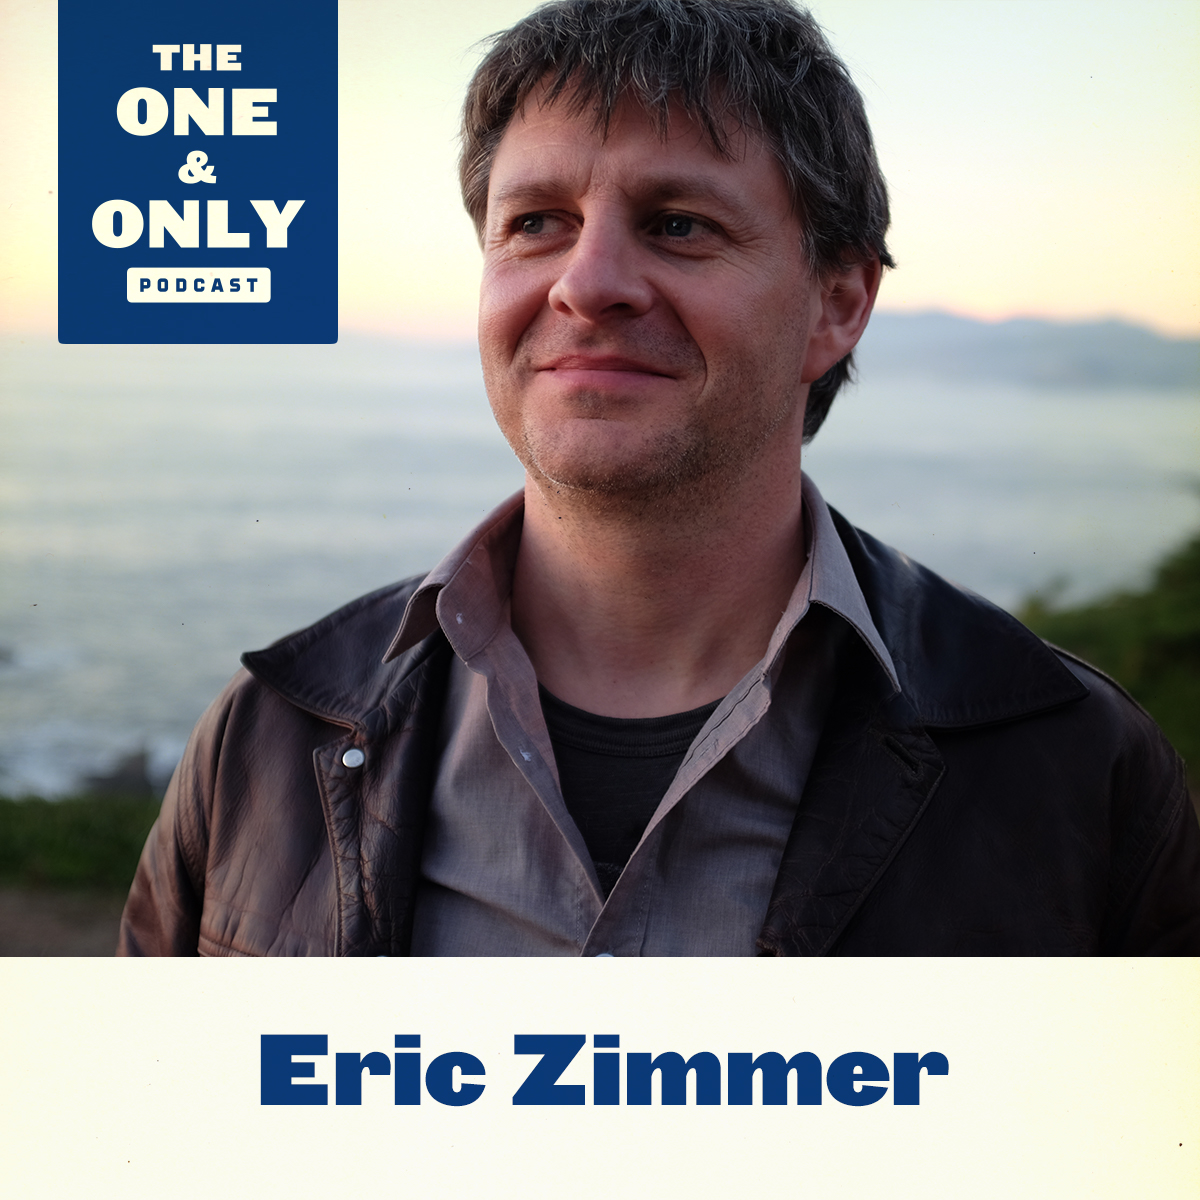 Eric Zimmer Interview | Are You Being Real?